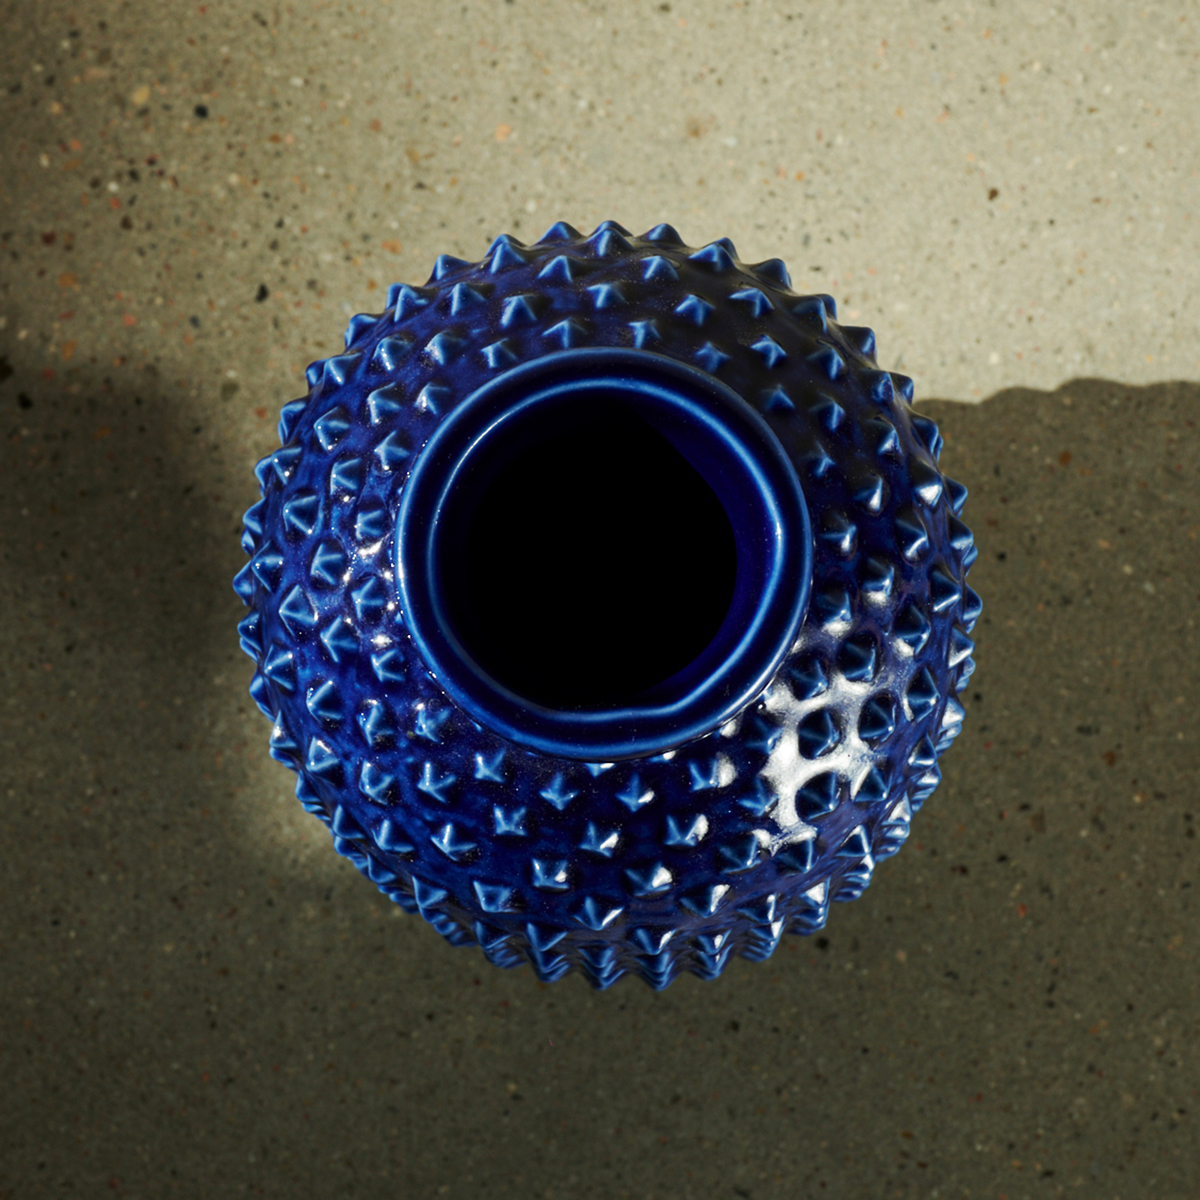 Vase with Spiky Surface by Gunnar Nylund